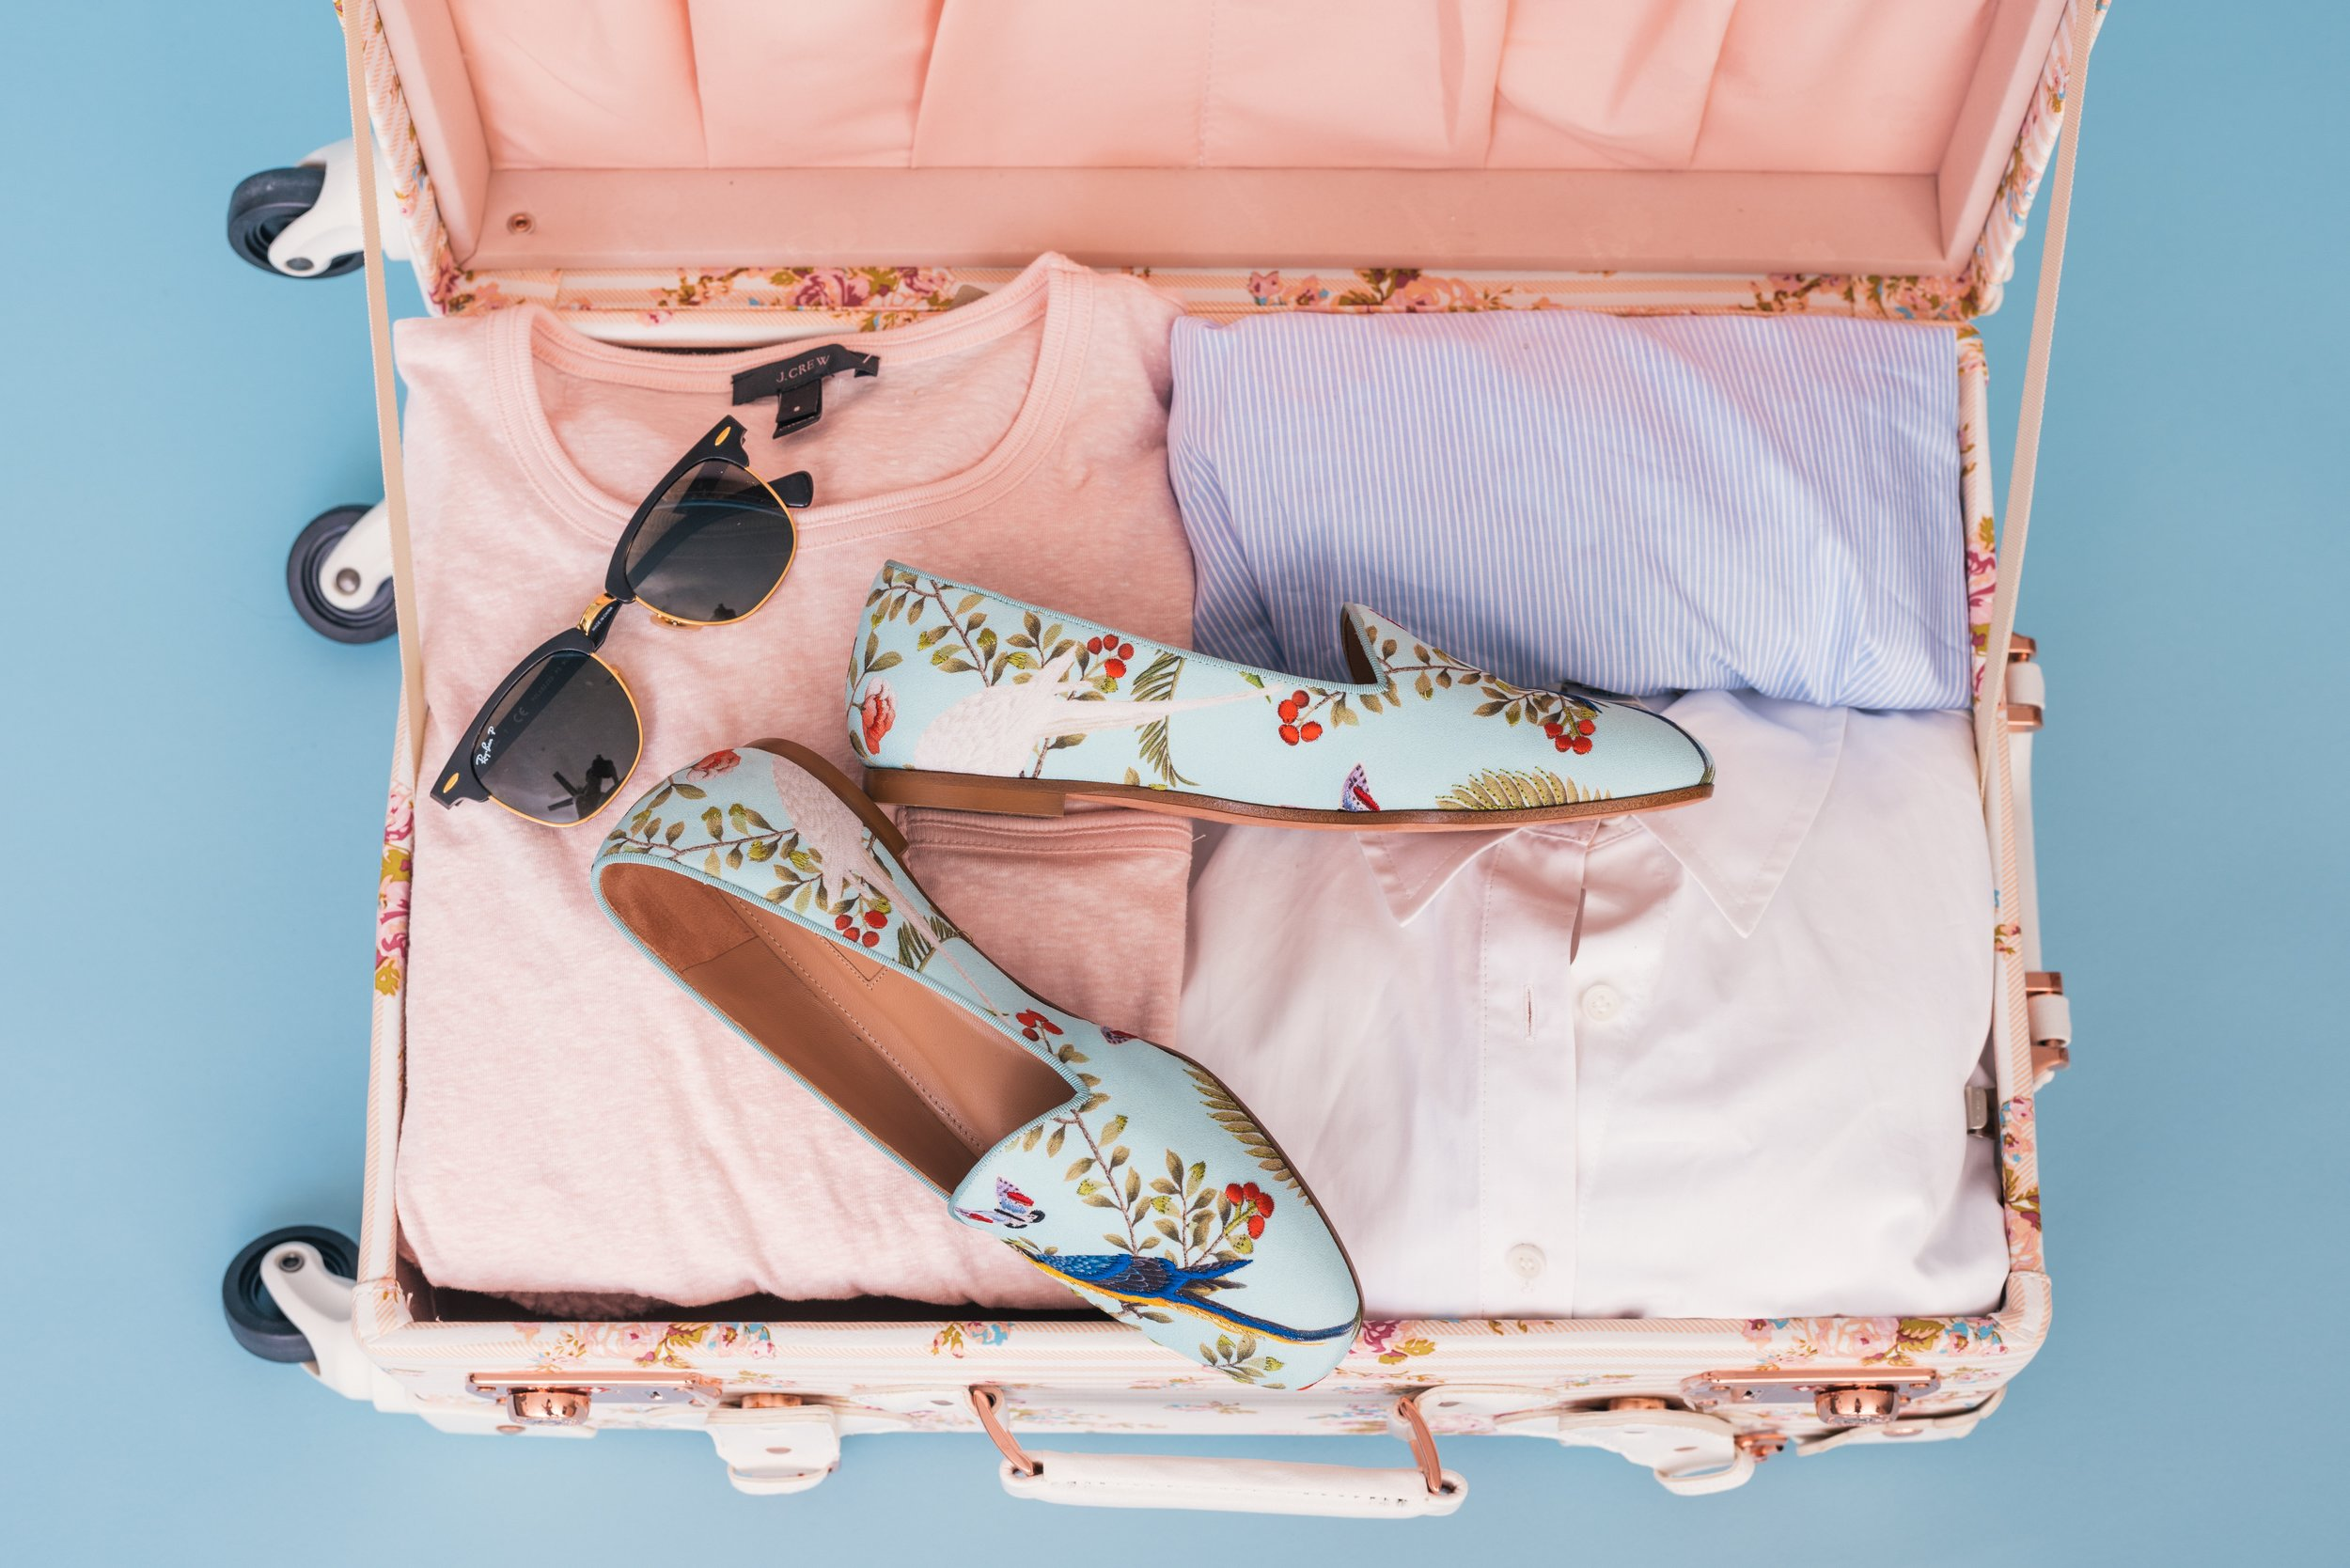 Pack all the essentials in your new carry on suitcase! (photography for illustration purposes only; contents not included)